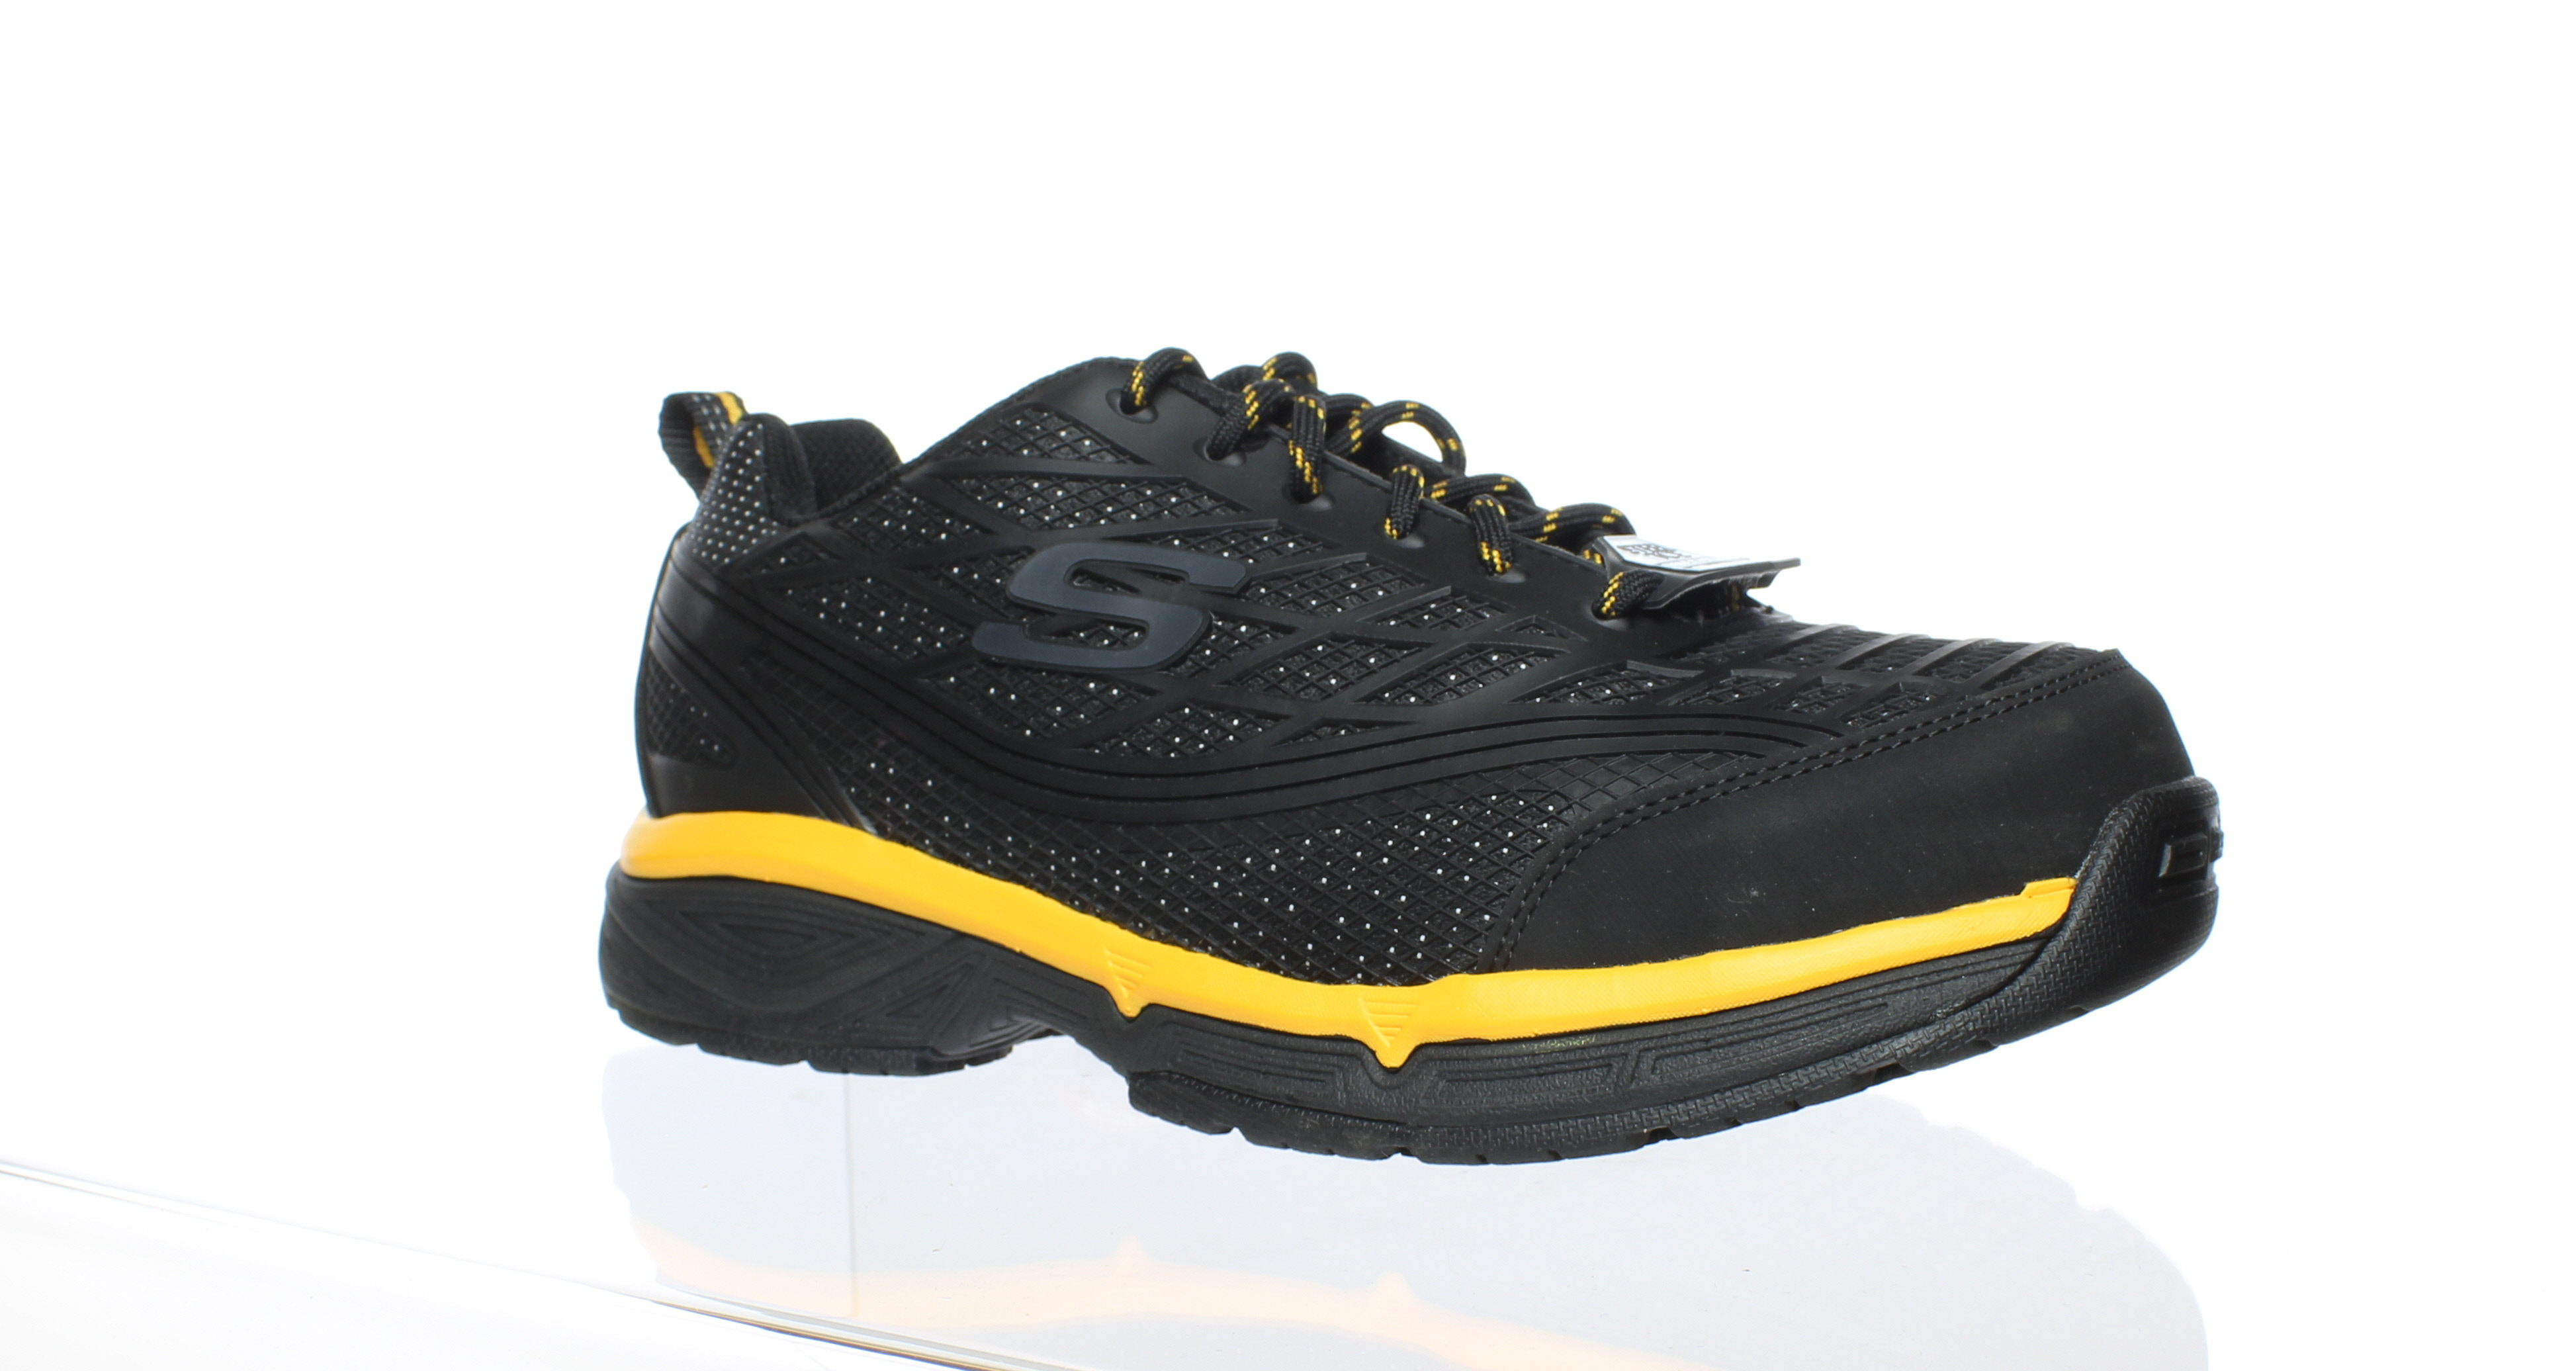 3d75a4cdeb01 Skechers Mens Black Yellow Size 9.5 889110542668